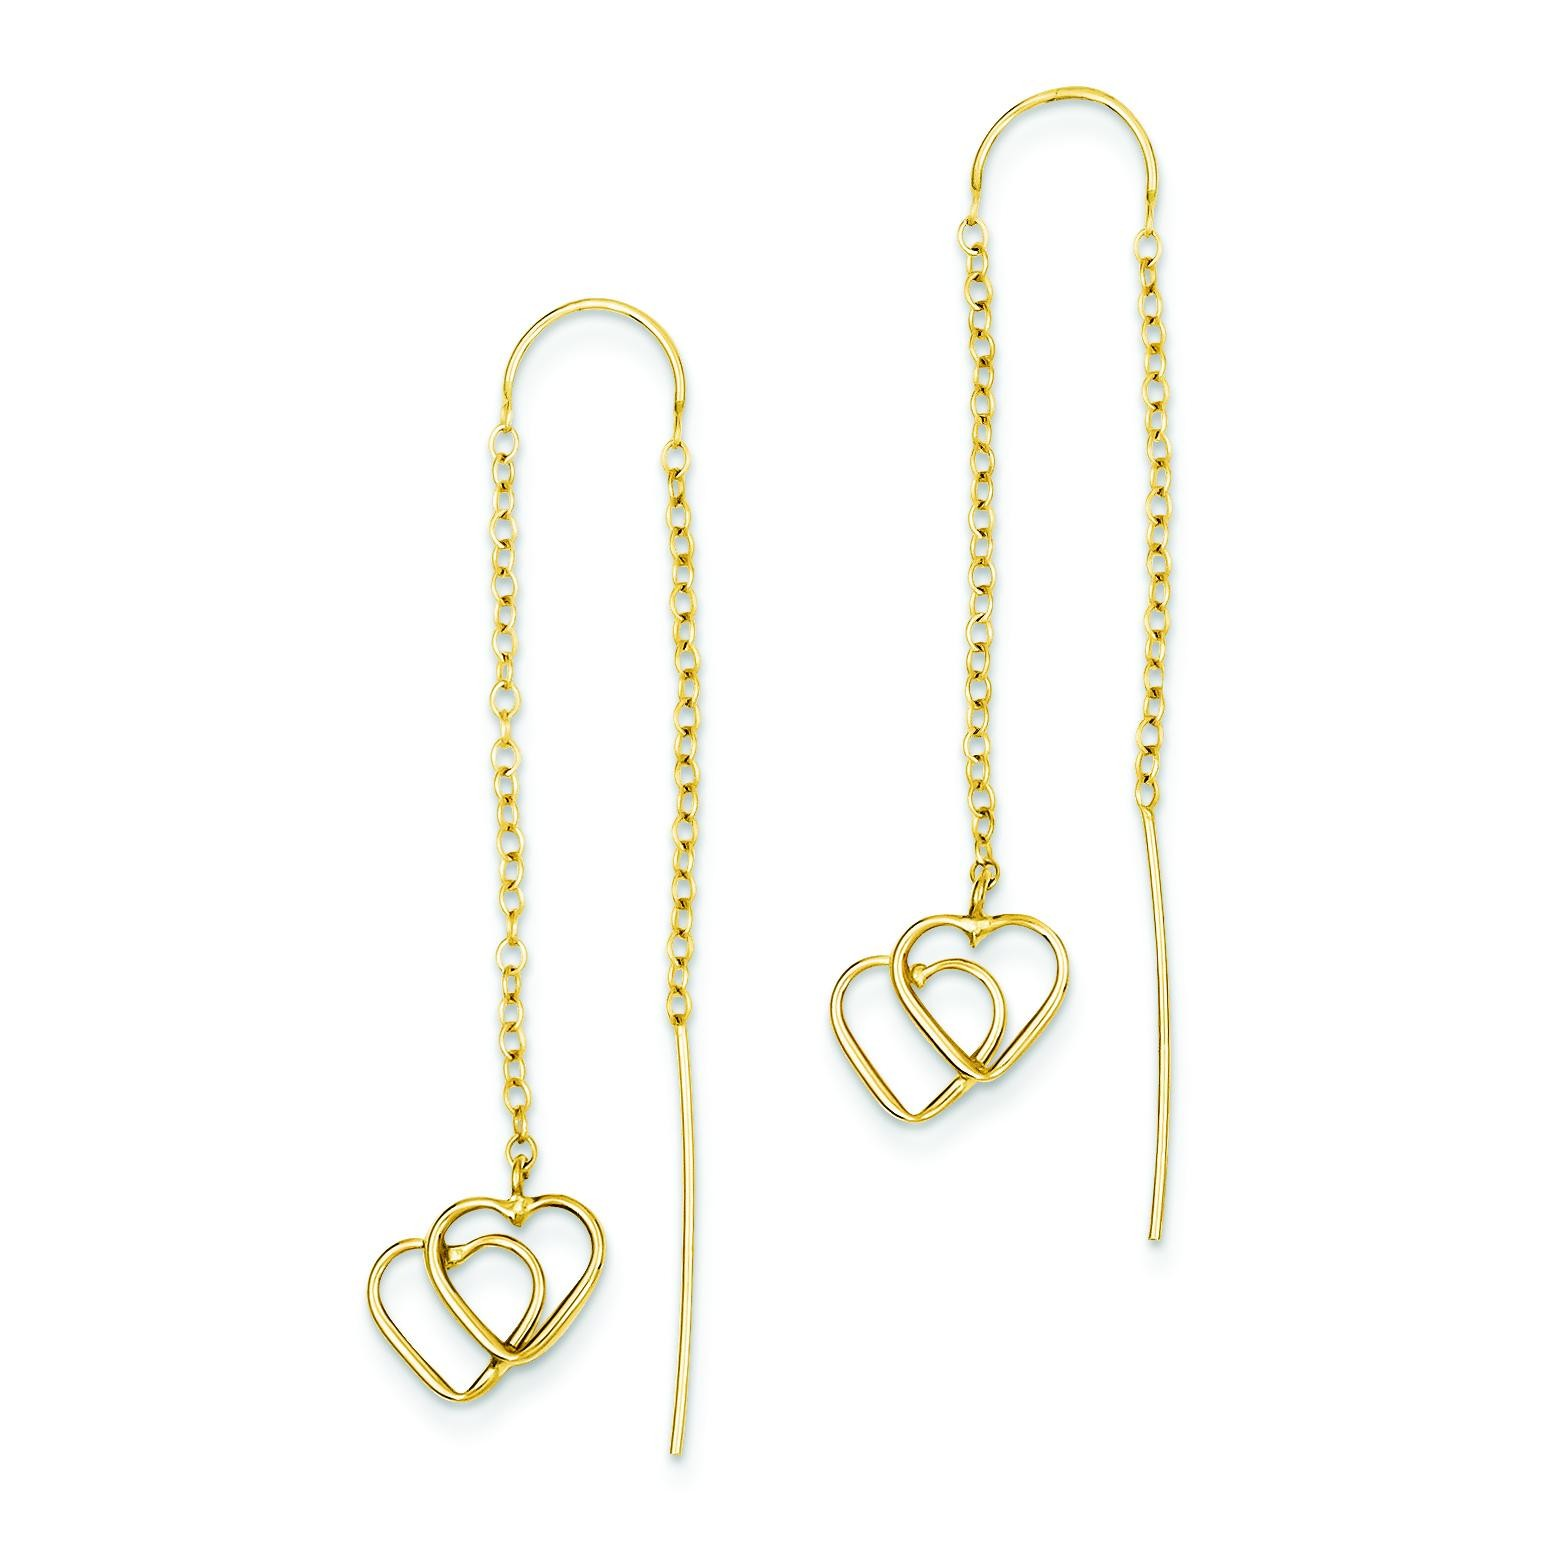 Double Heart Threader Earrings in 14k Yellow Gold